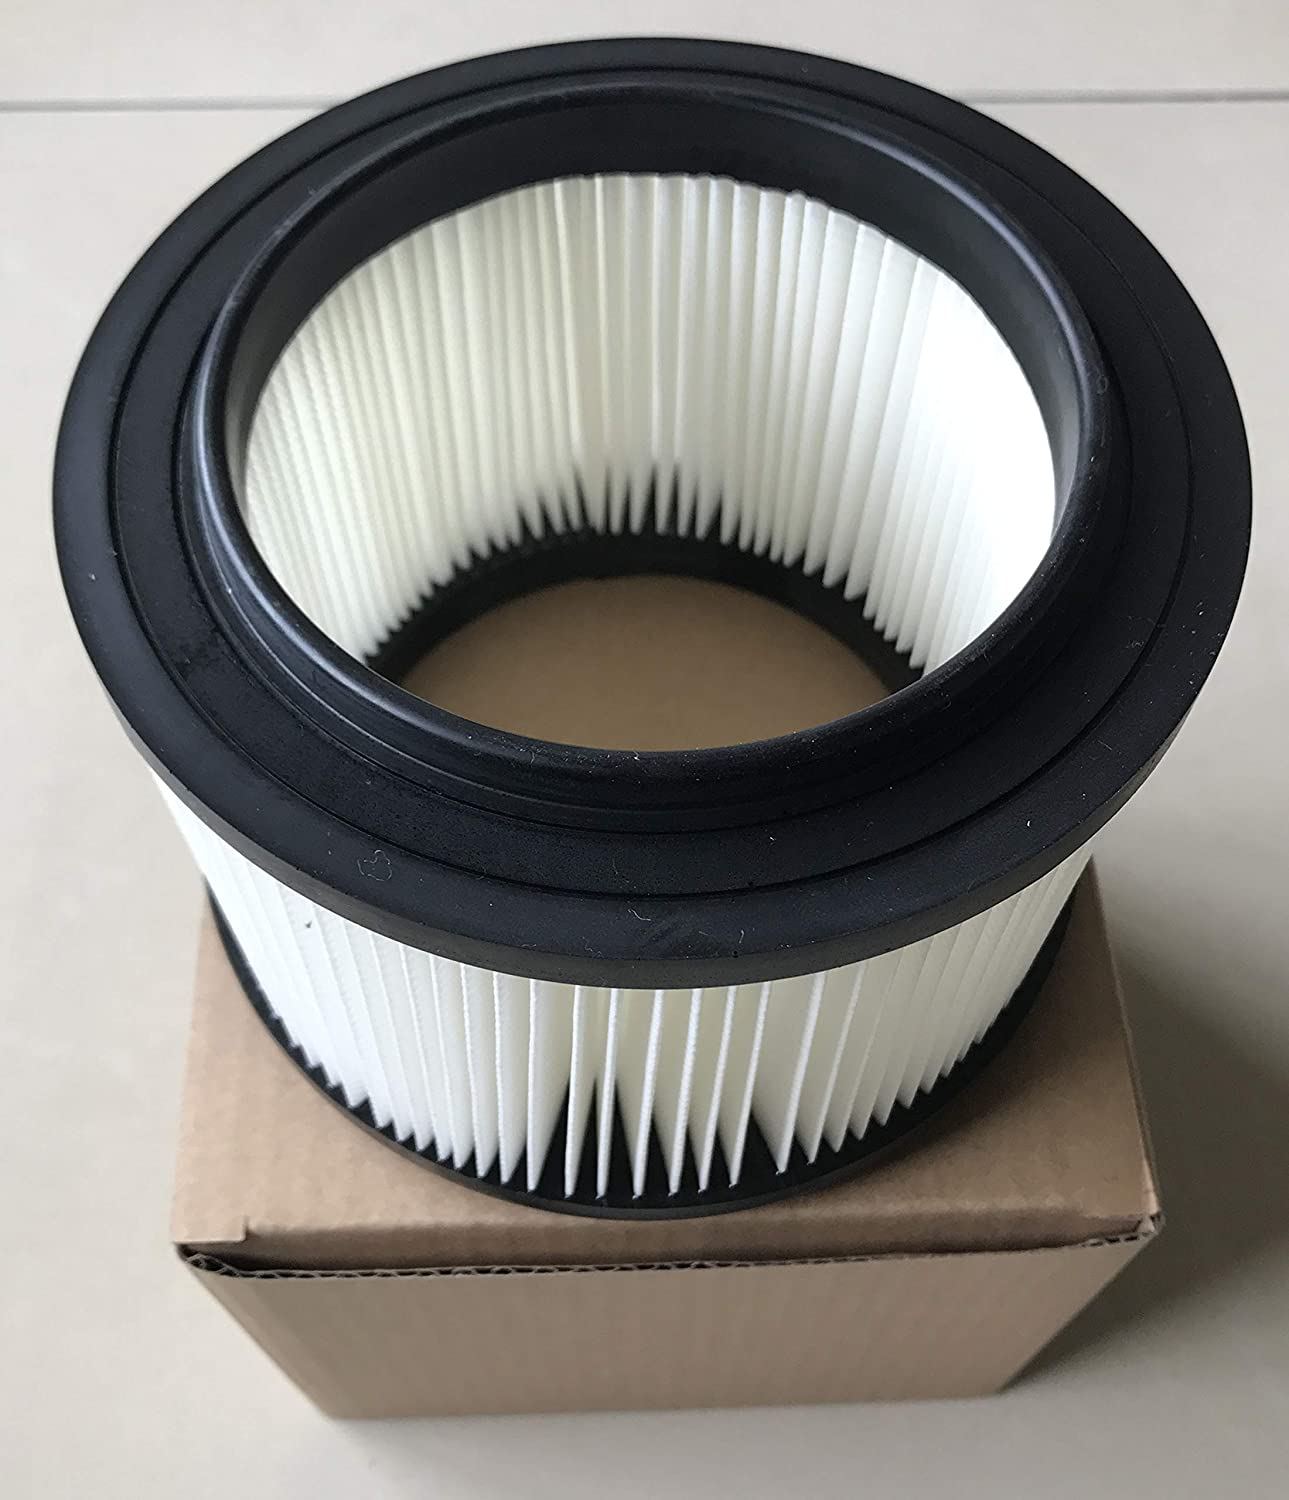 KLEAN AIR 17810 Filter Compatible with Craftsman 9-17810 shop vac filter 3/4 gal vacuum Washable Pleated Paper-1PCS/PK-NEW!